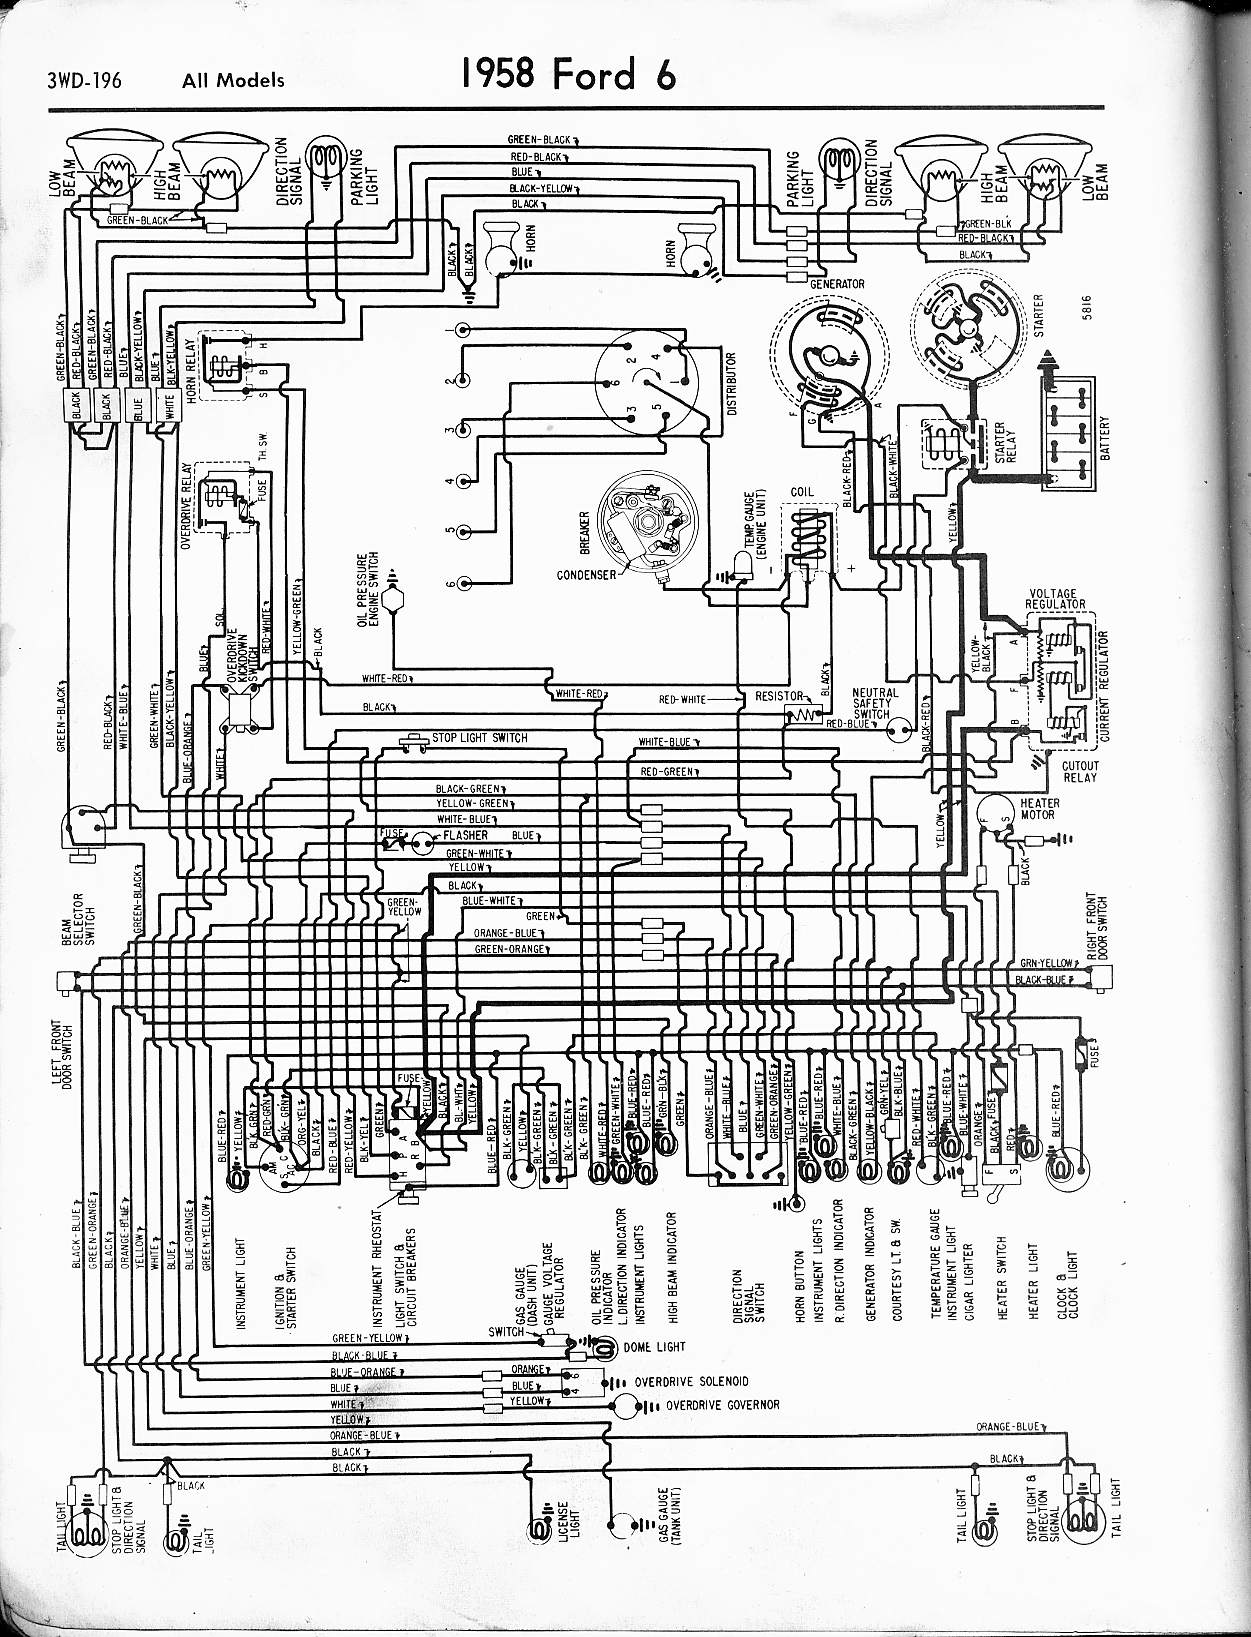 1967 ford f250 wiring diagram wiring diagram1967 ford f250 wiring diagram